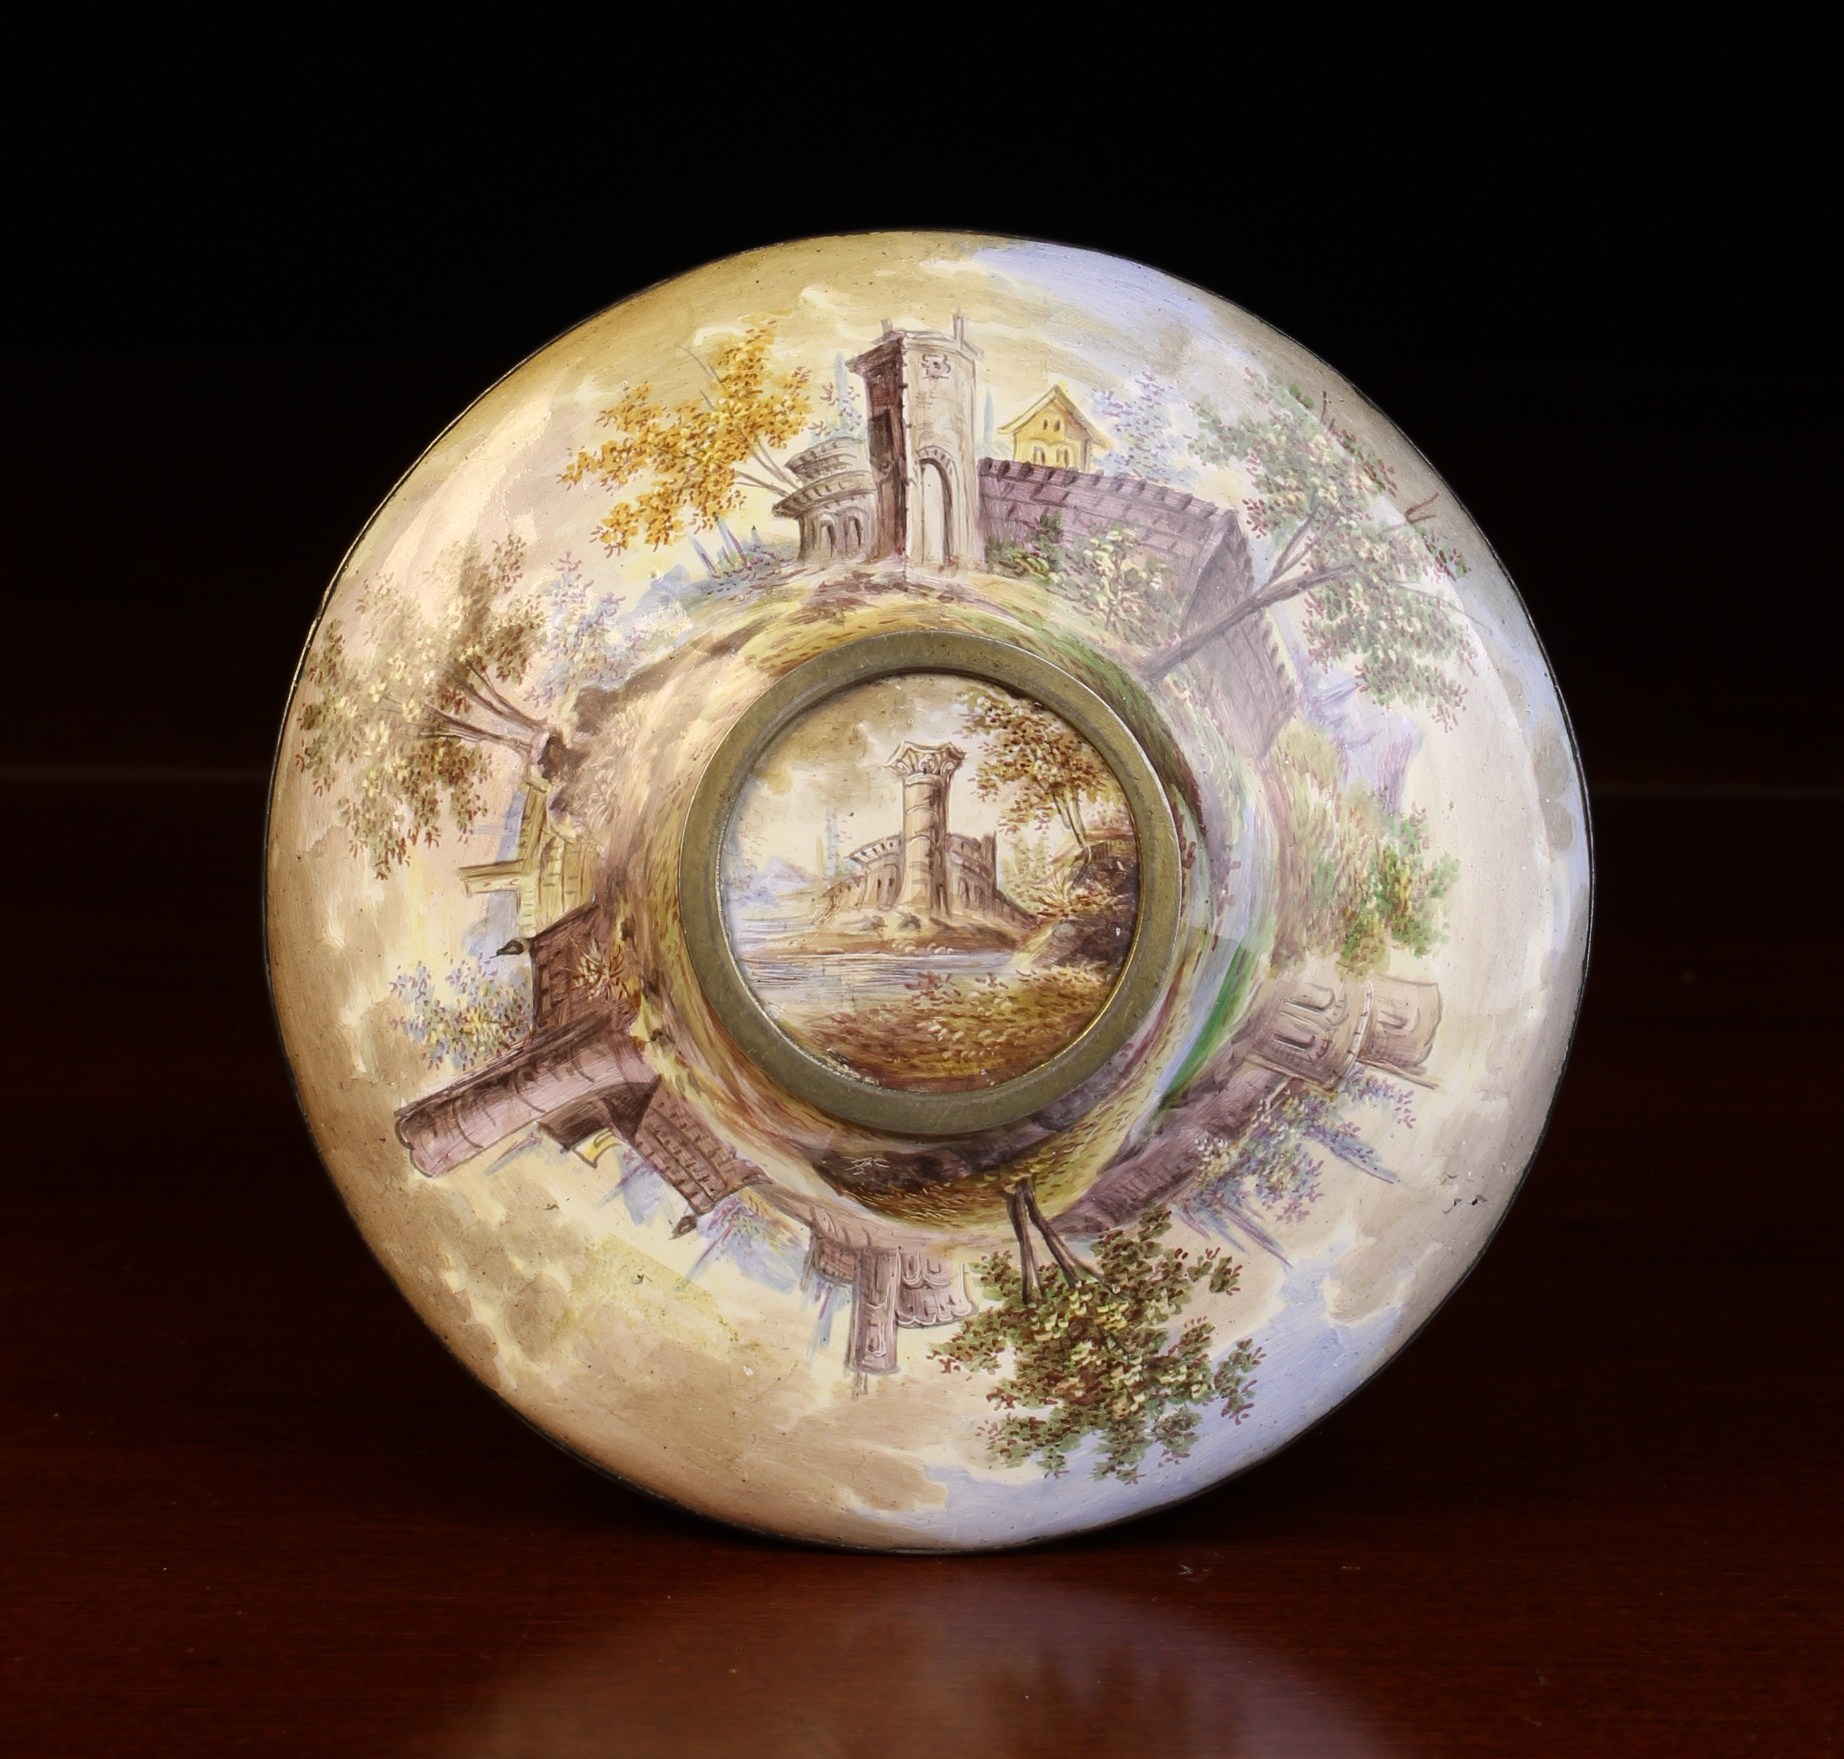 A Fine 19th Century Viennese Enamel Saucer painted in elaborate detail with classical figures - Image 2 of 2